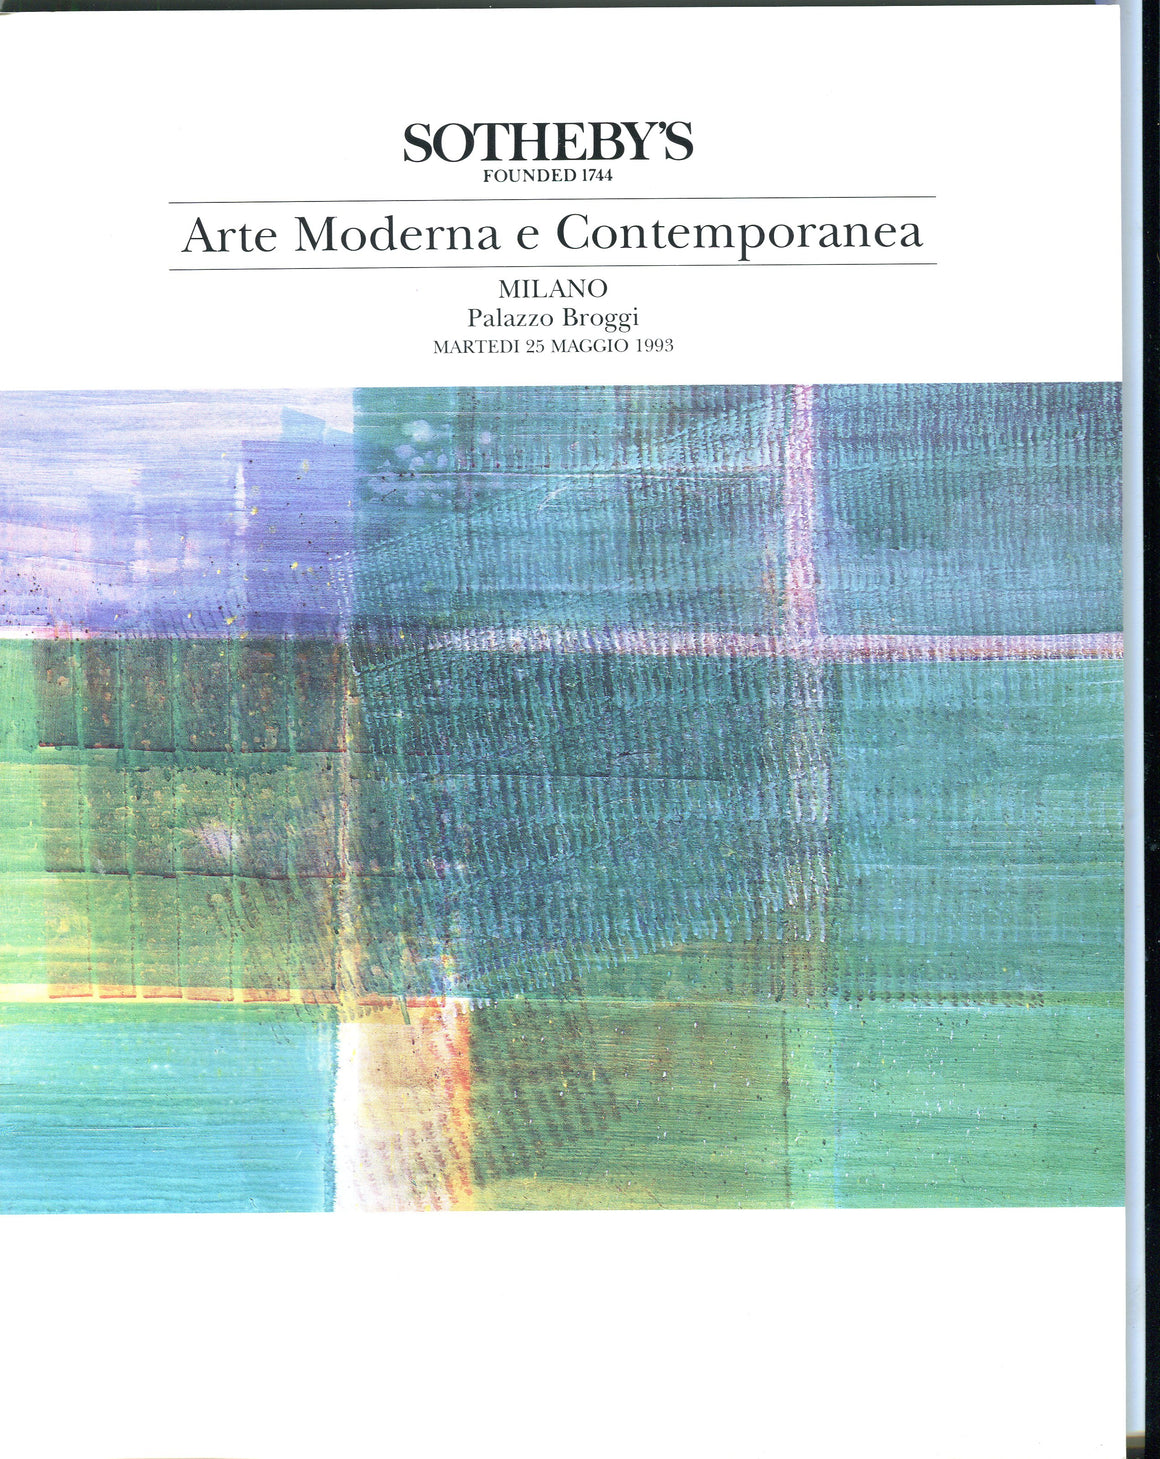 Sothebys Auction Catalog May 25 1993 Modern and Contemporary Art Milan